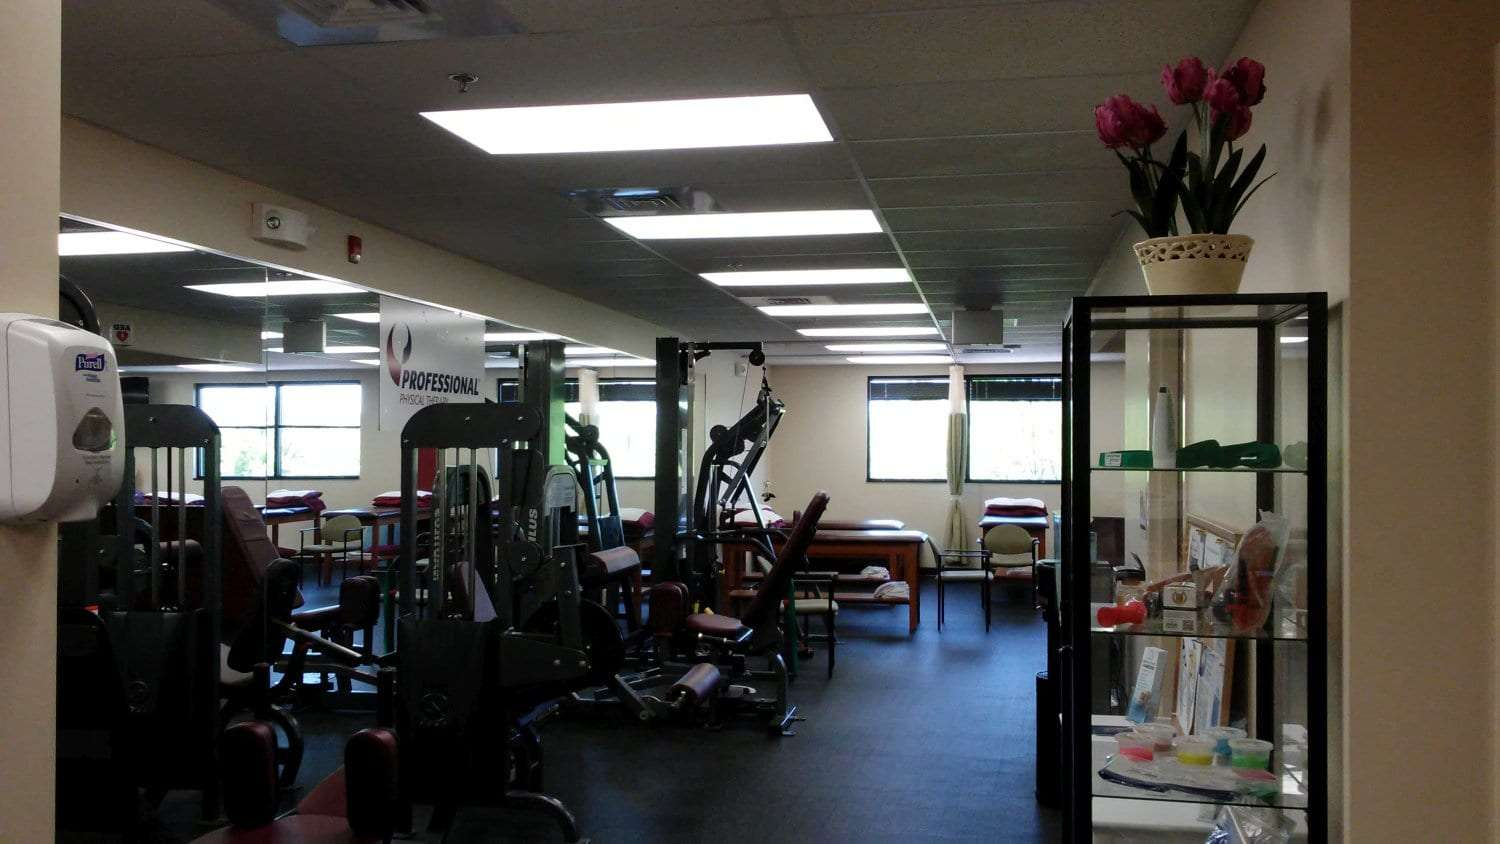 Here is an image of the equipment at our physical therapy clinic in Newton, New Jersey.